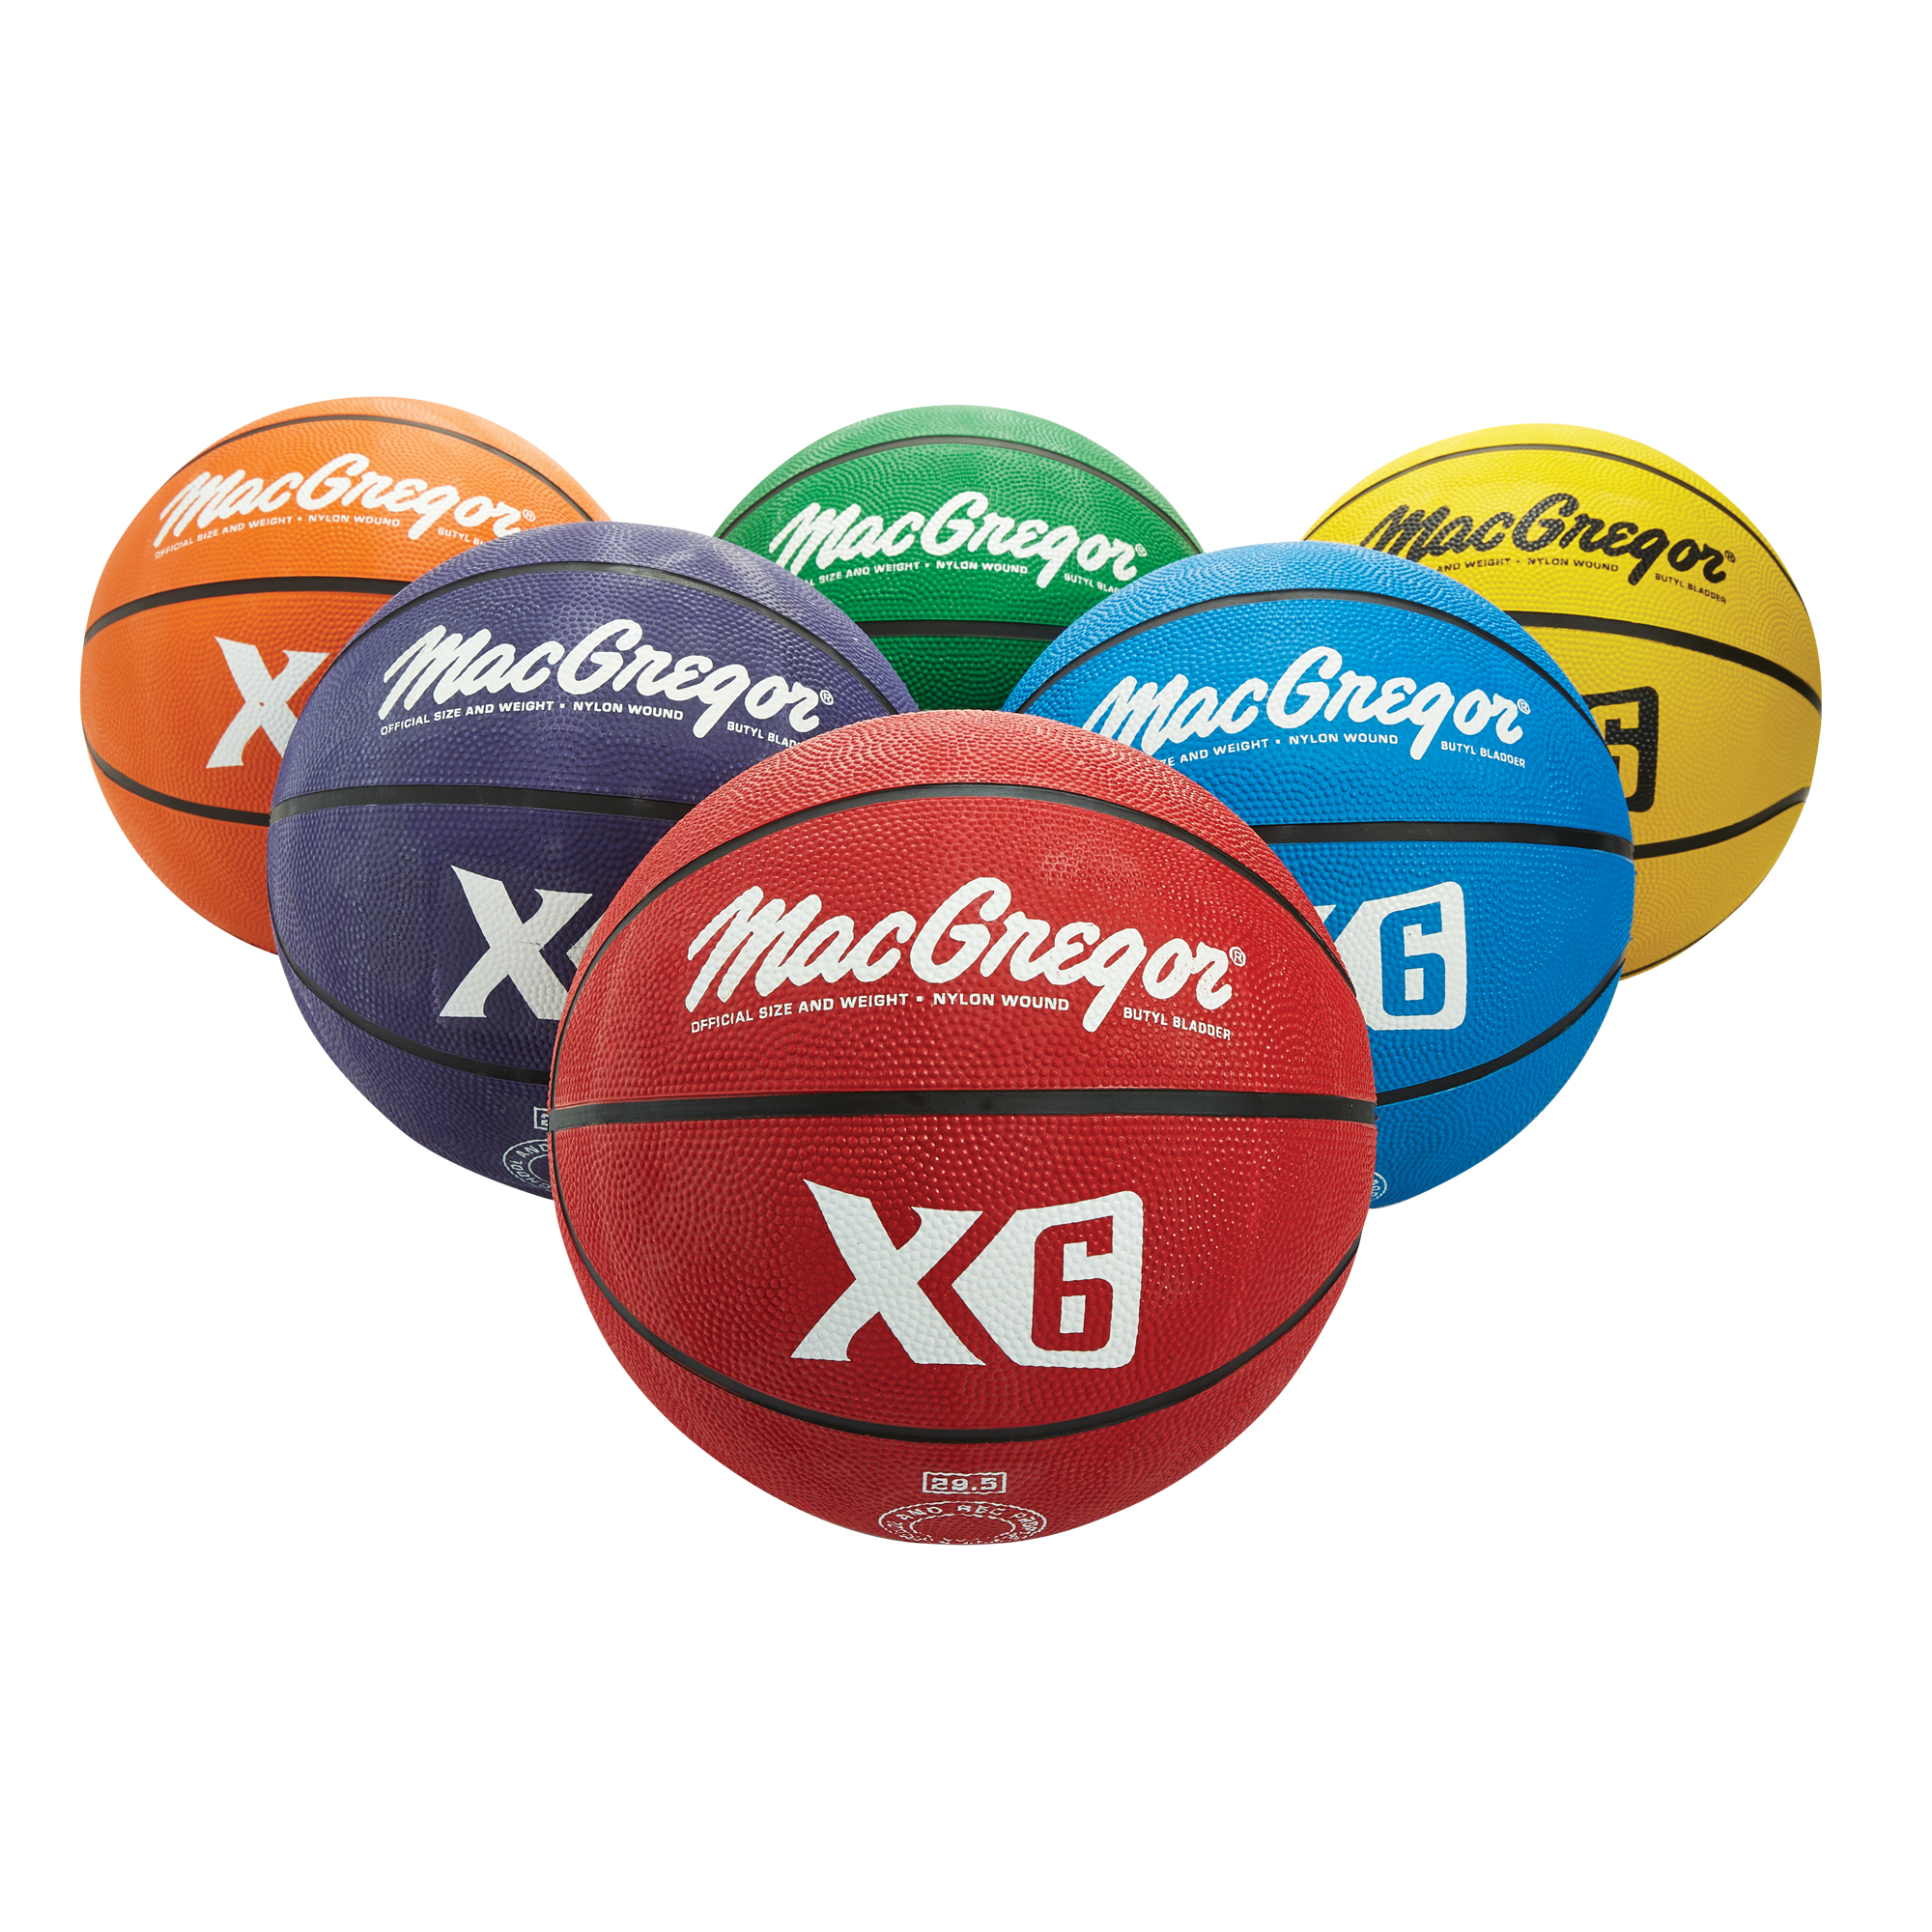 Macgregor Multi-Color Basketball Official 6-Piece Prism Pack